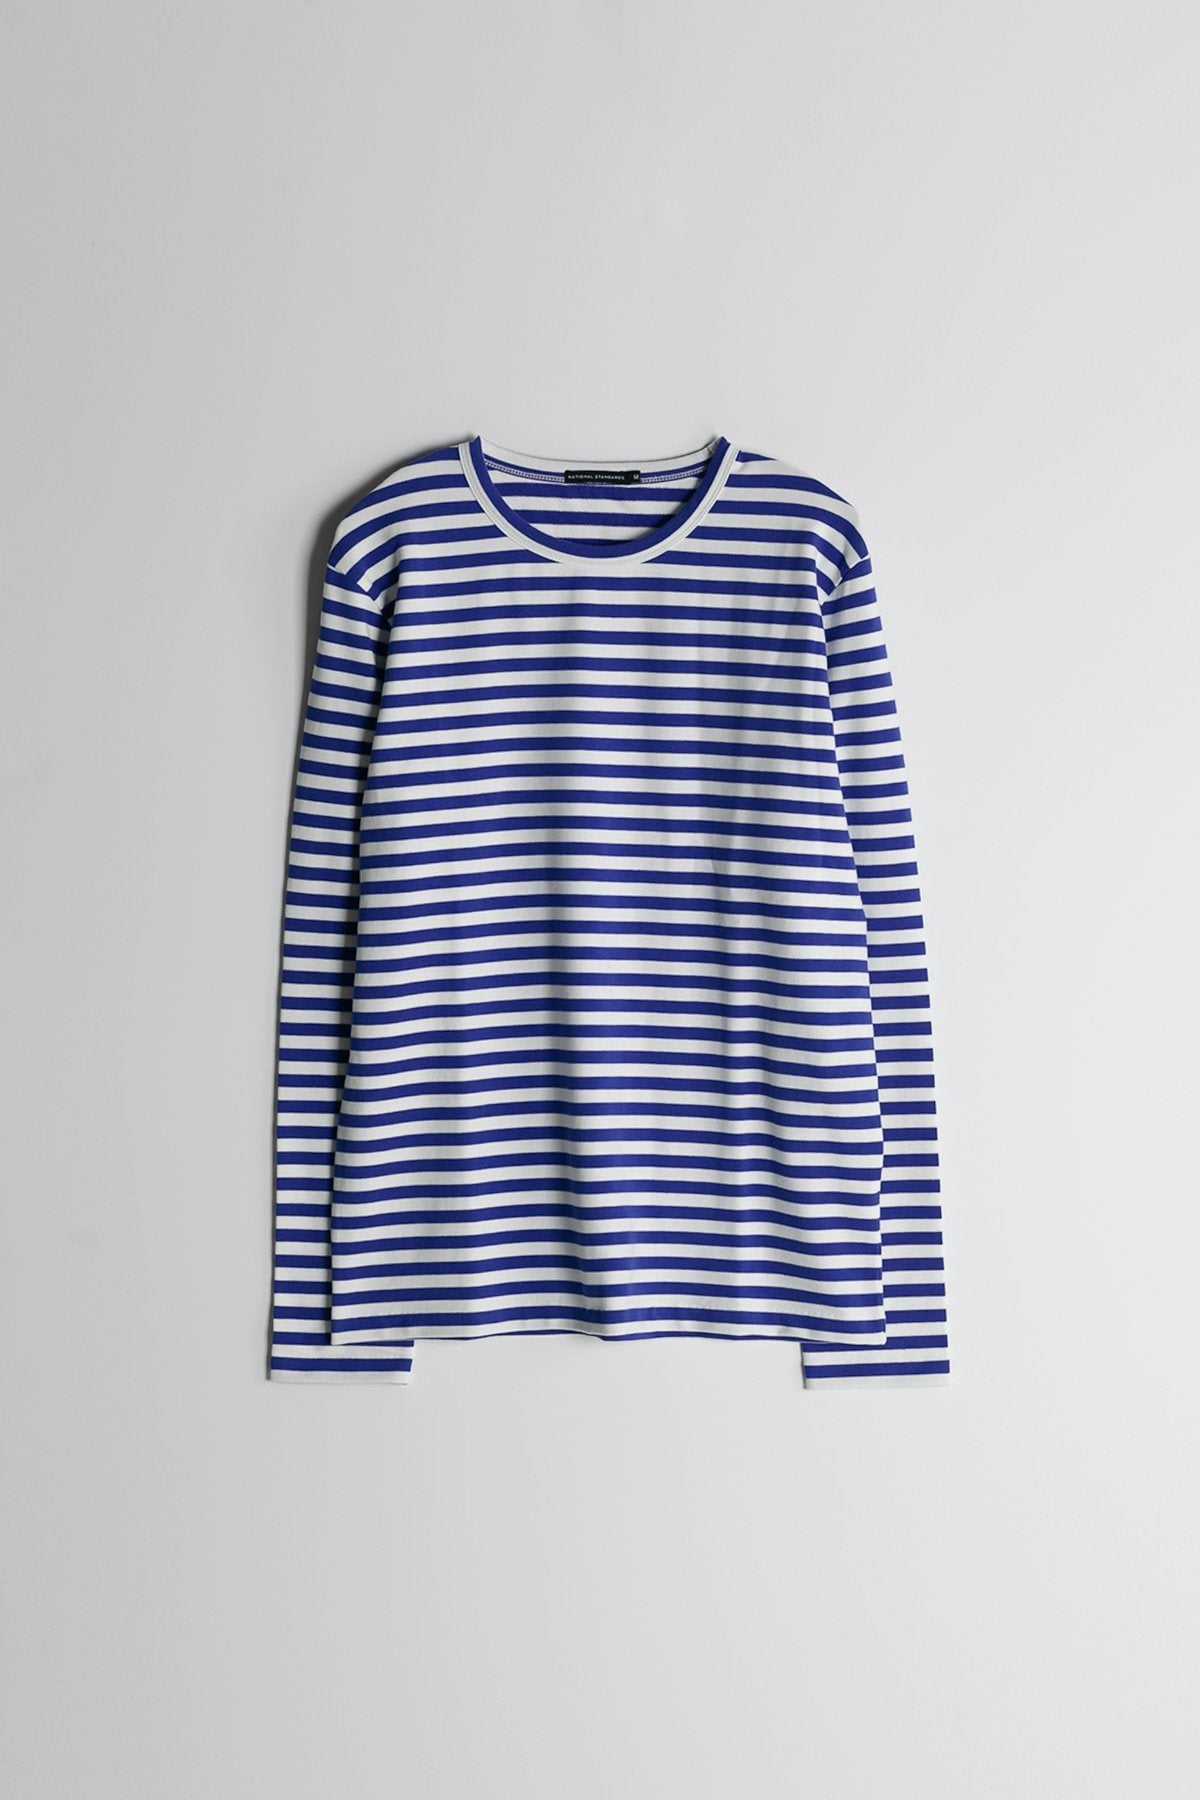 Marine Stripe L/S Crew in Blue and White